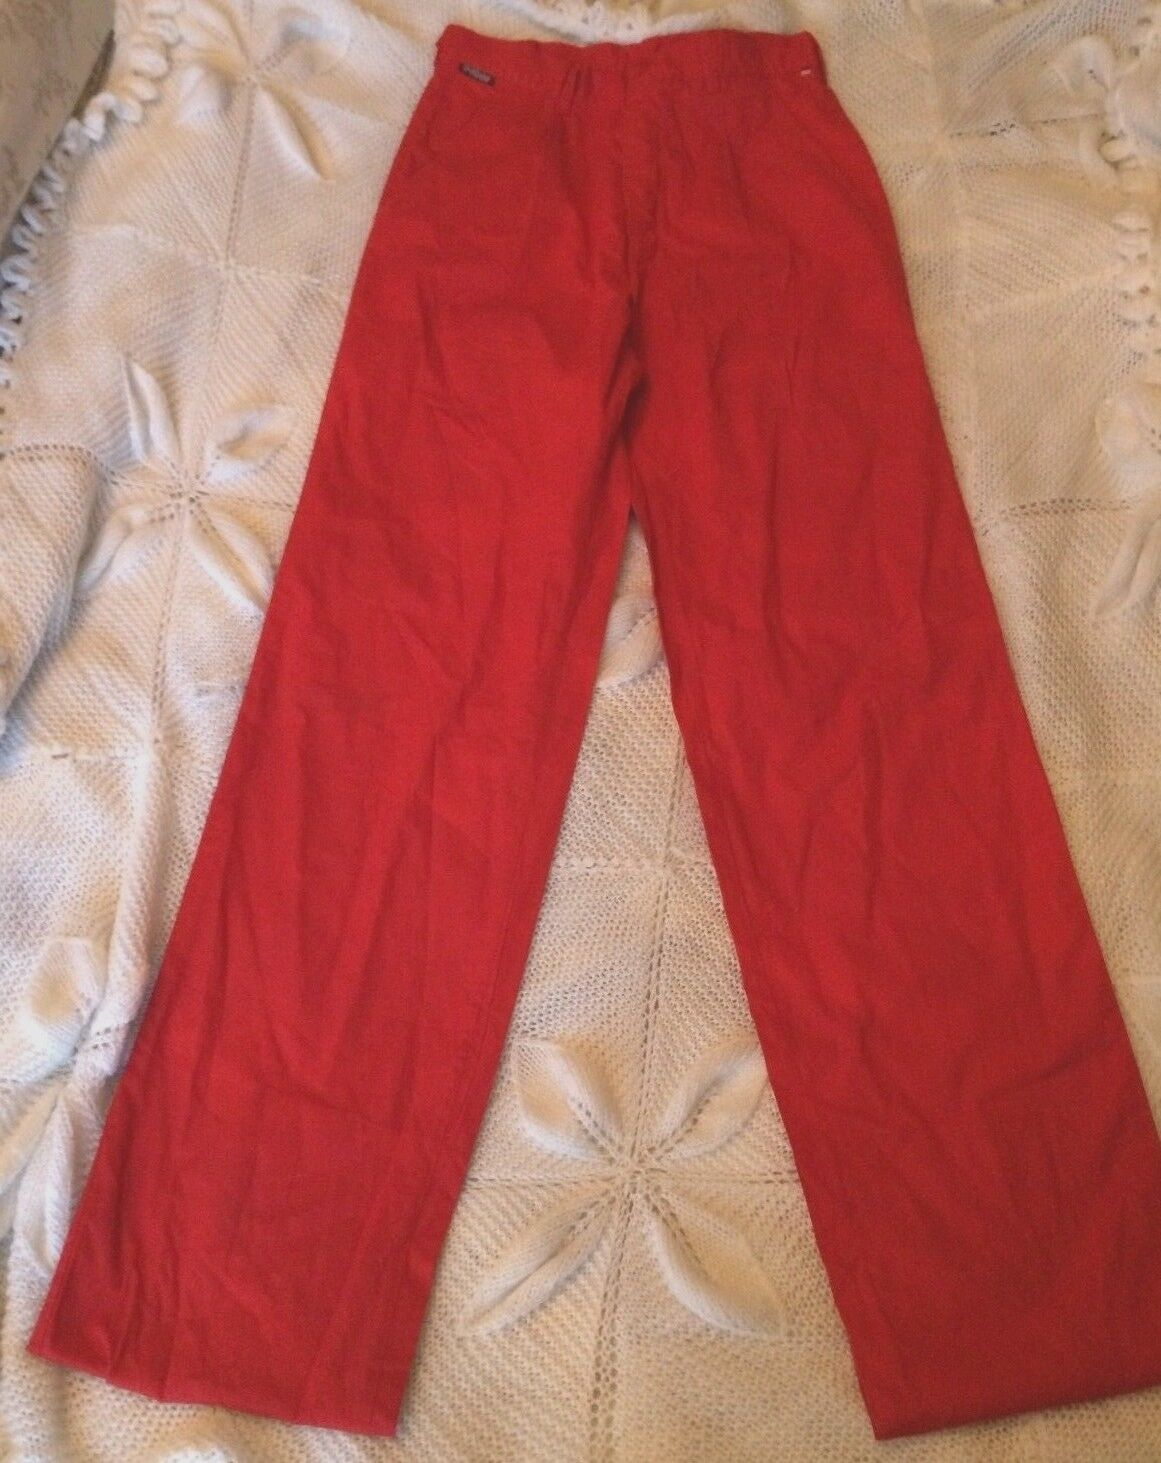 Ladies true vintage skinny leg high waist red trousers 4 6 petite